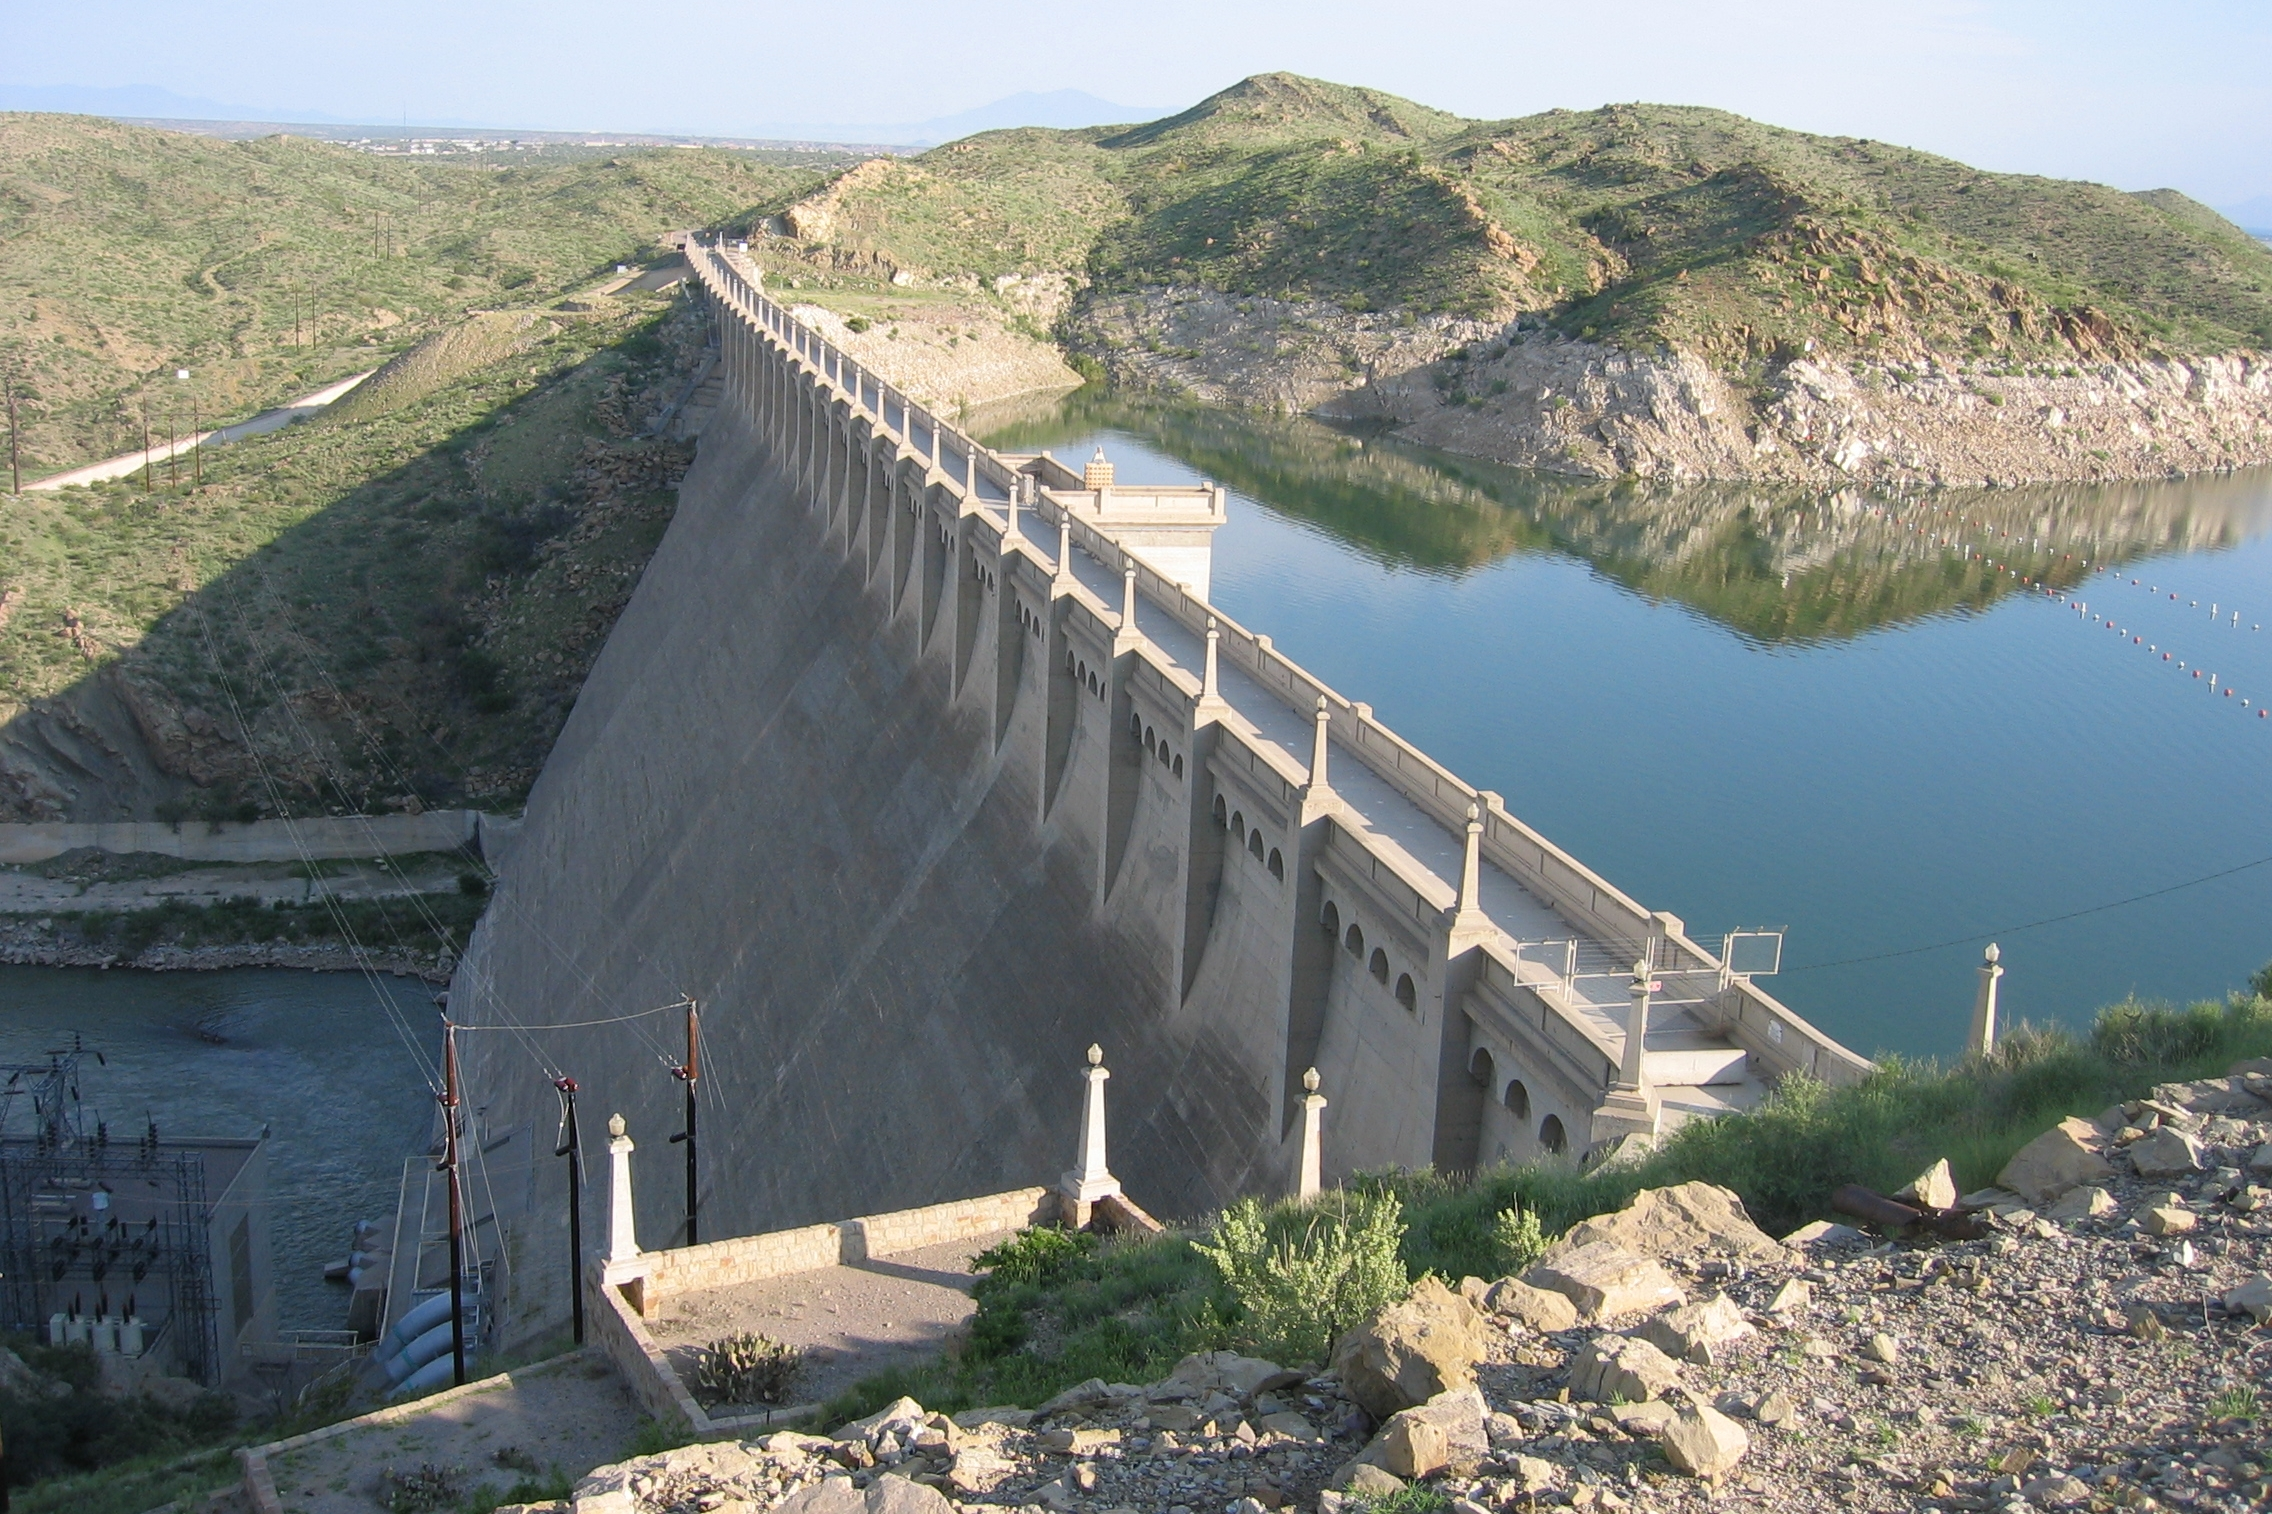 Elephant Butte Dam, listed on the National Register of Historic Places